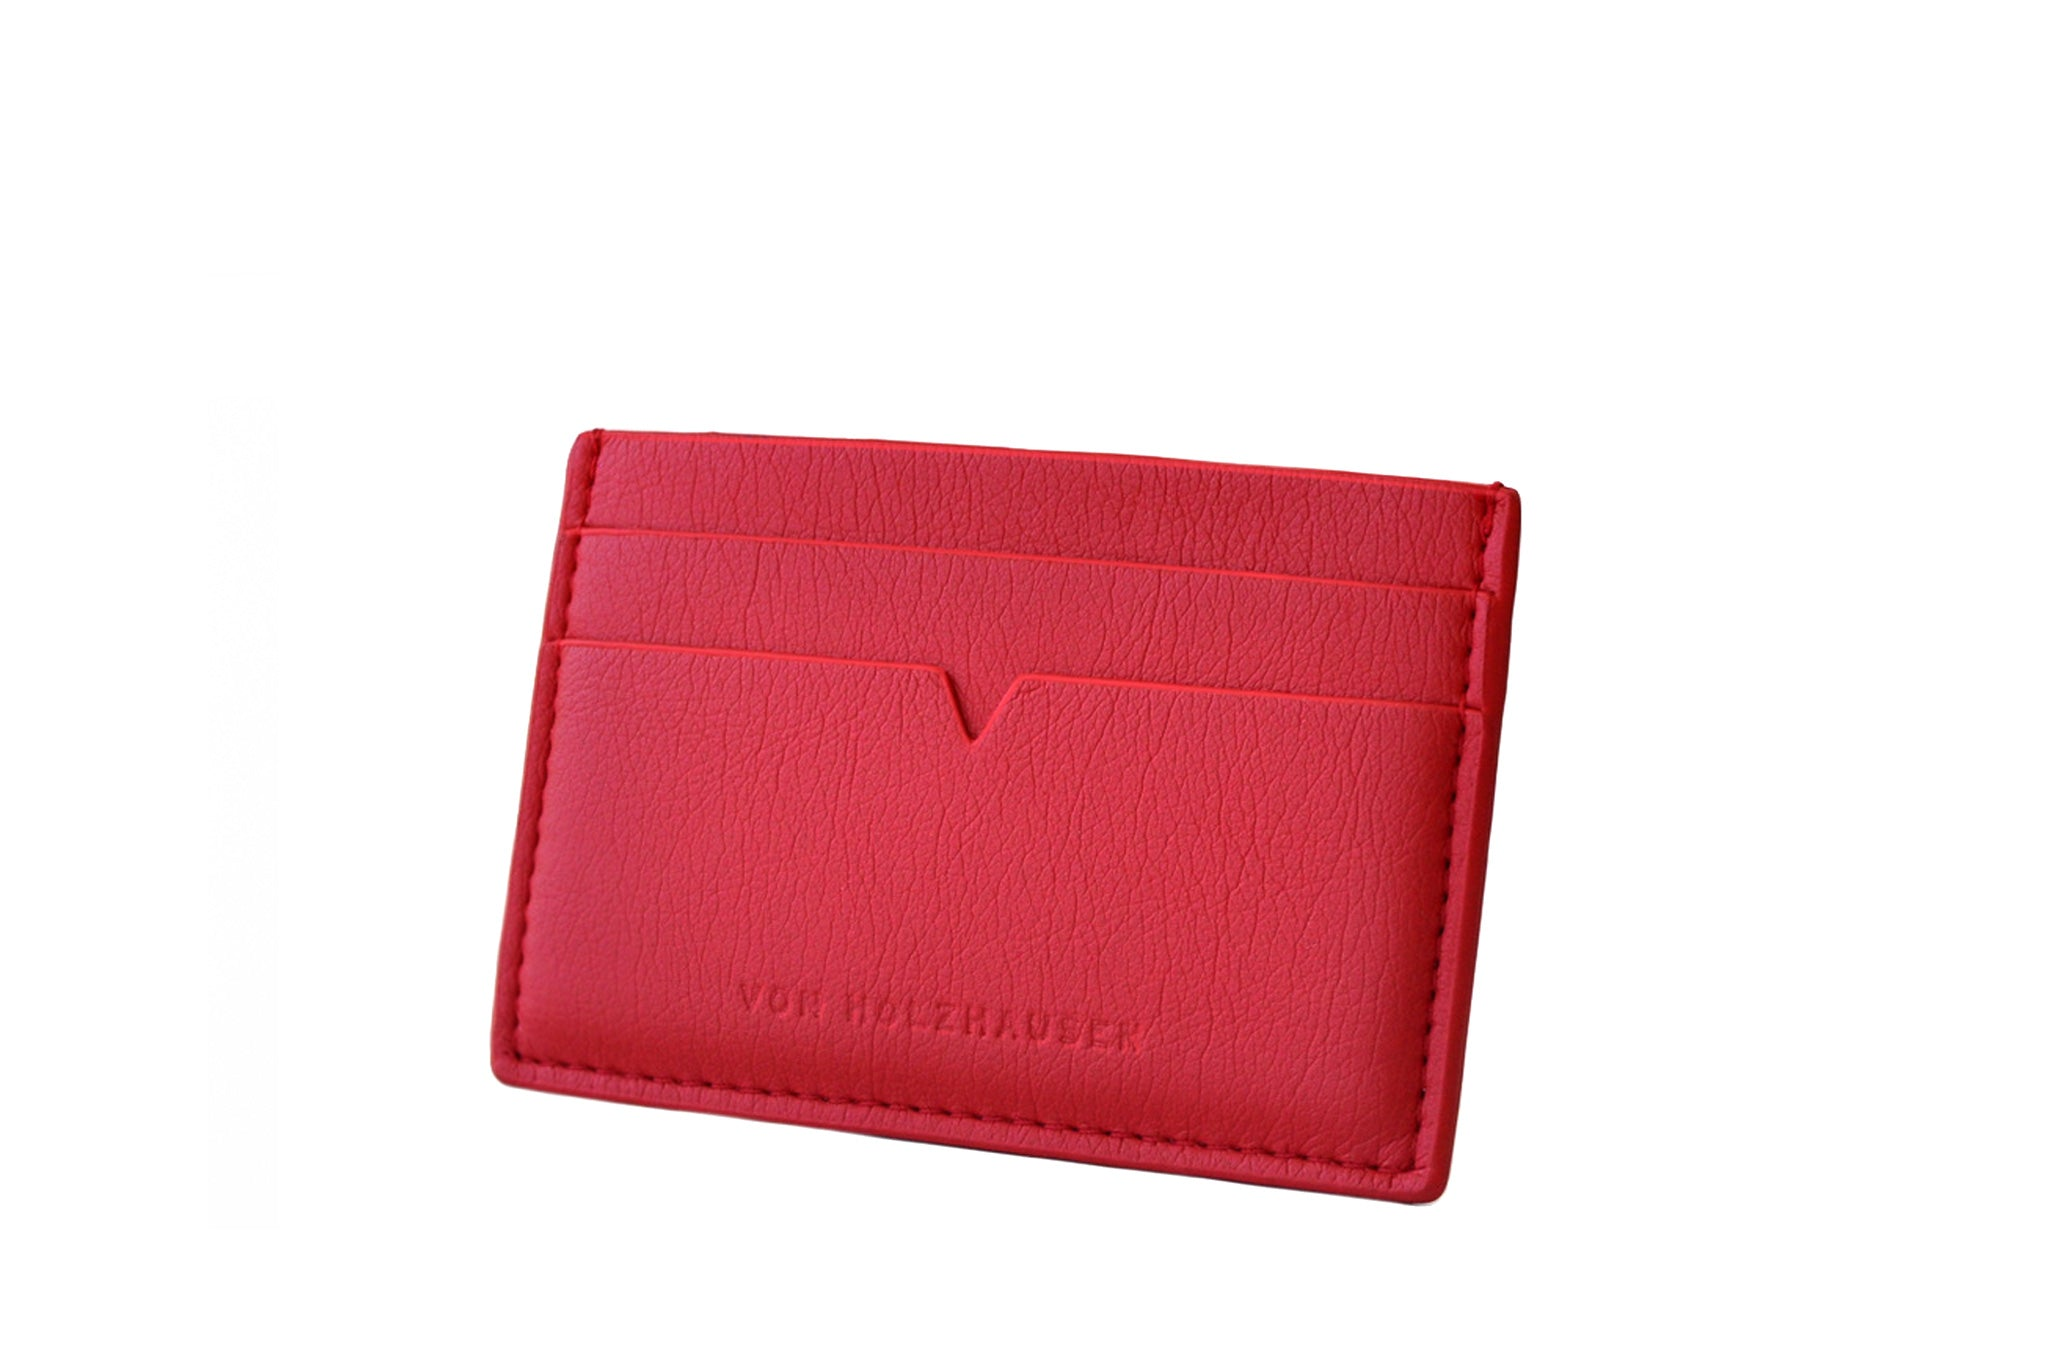 The Credit Card Holder in Technik-Leather in Cherry